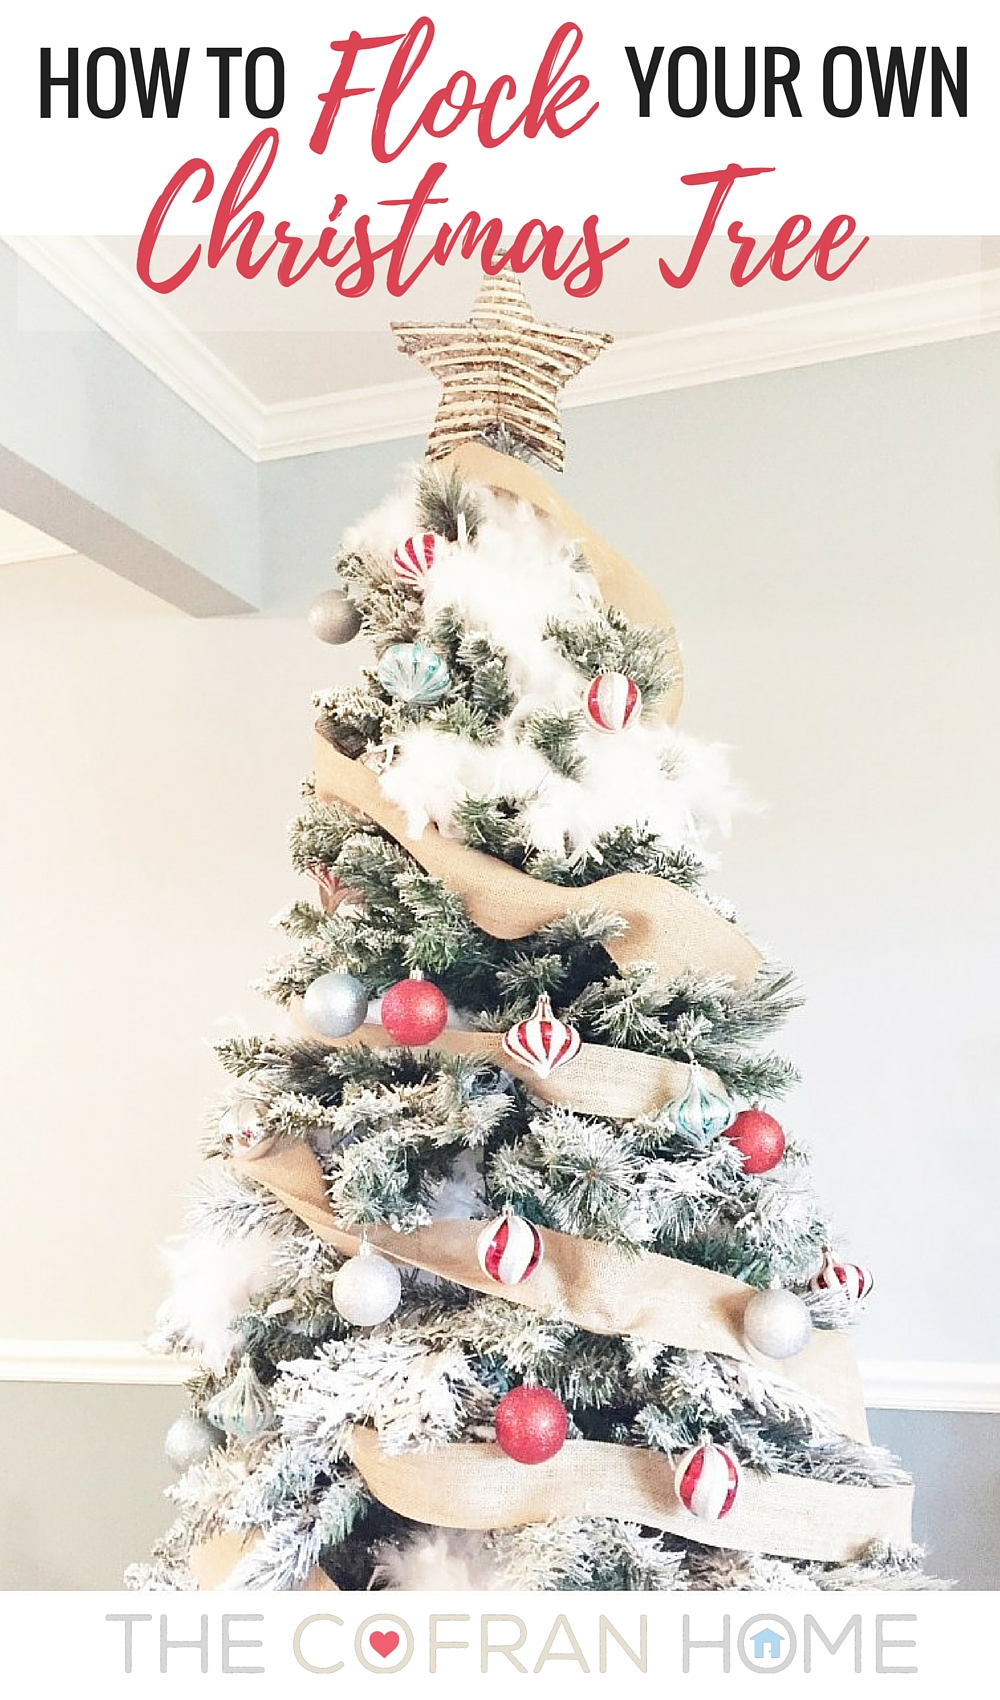 How to flock your own Christmas Tree - The Cofran Home